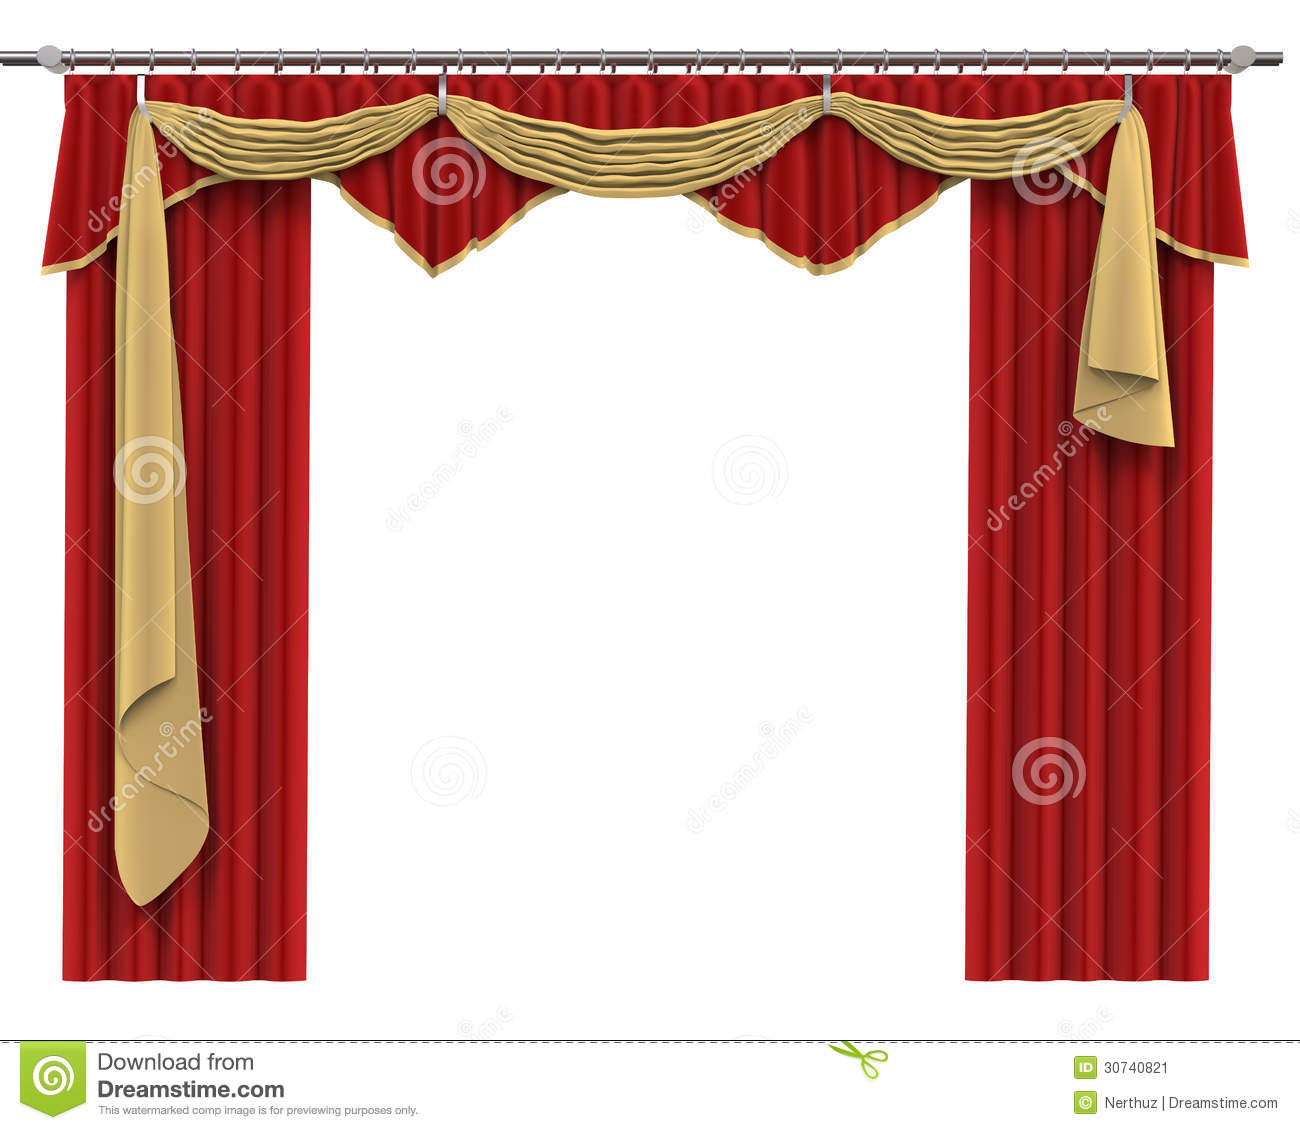 Cortinas De Baño Rojas:White and Red Curtains Background